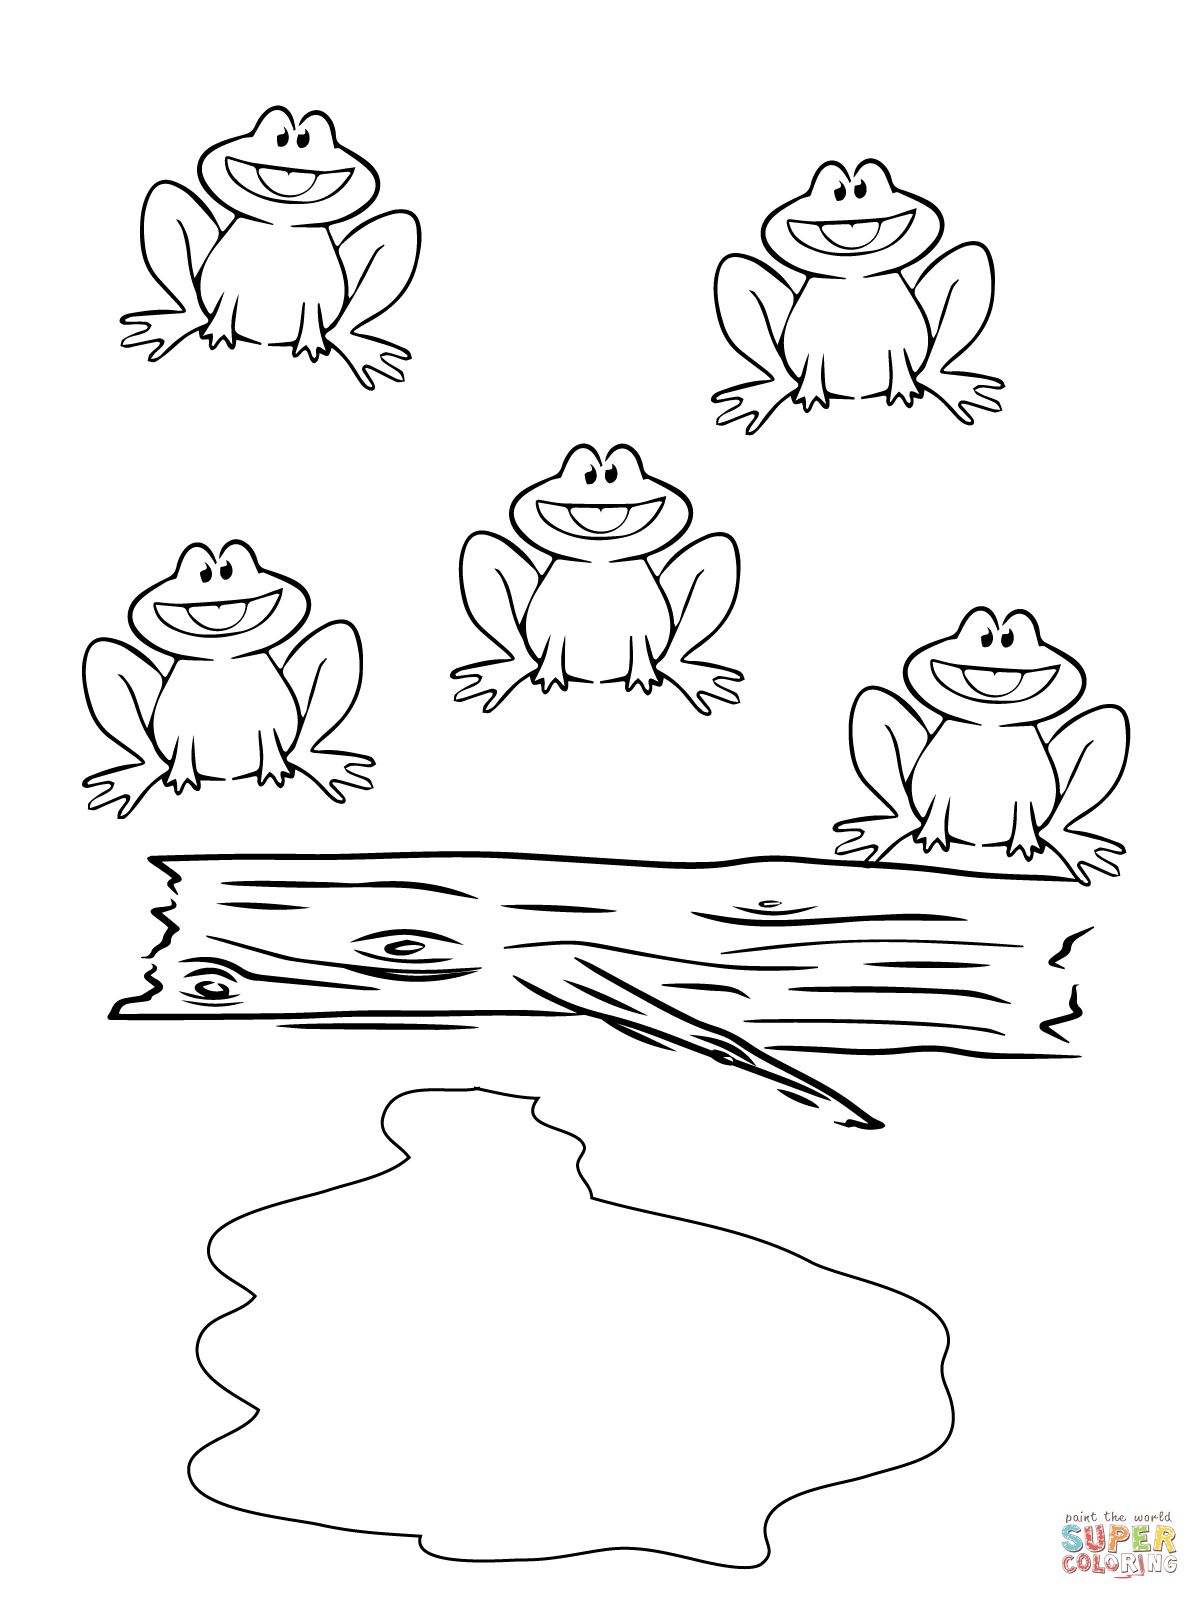 Find The Frog Worksheet